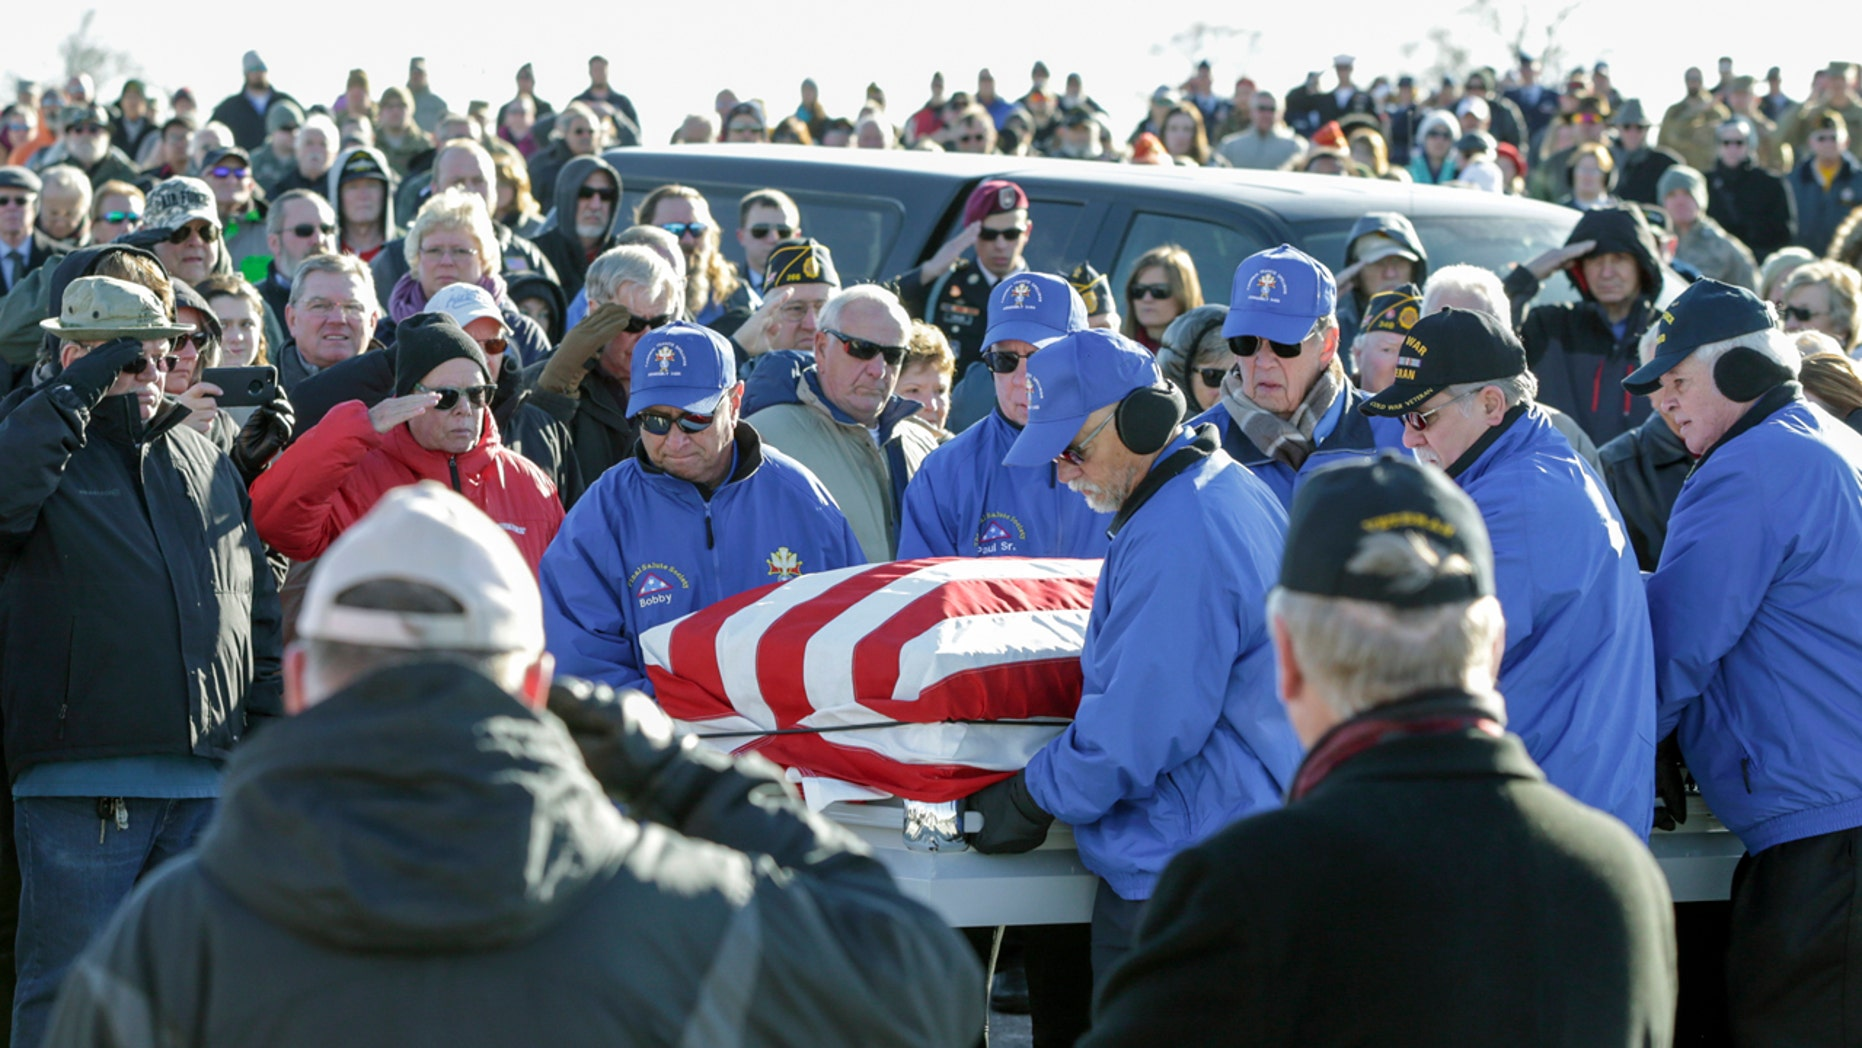 Pallbearers carrying the flag-draped casket of Vietnam veteran Stanley Stoltz at the Omaha National Cemetery on Tuesday. (AP Photo/Nati Harnik)